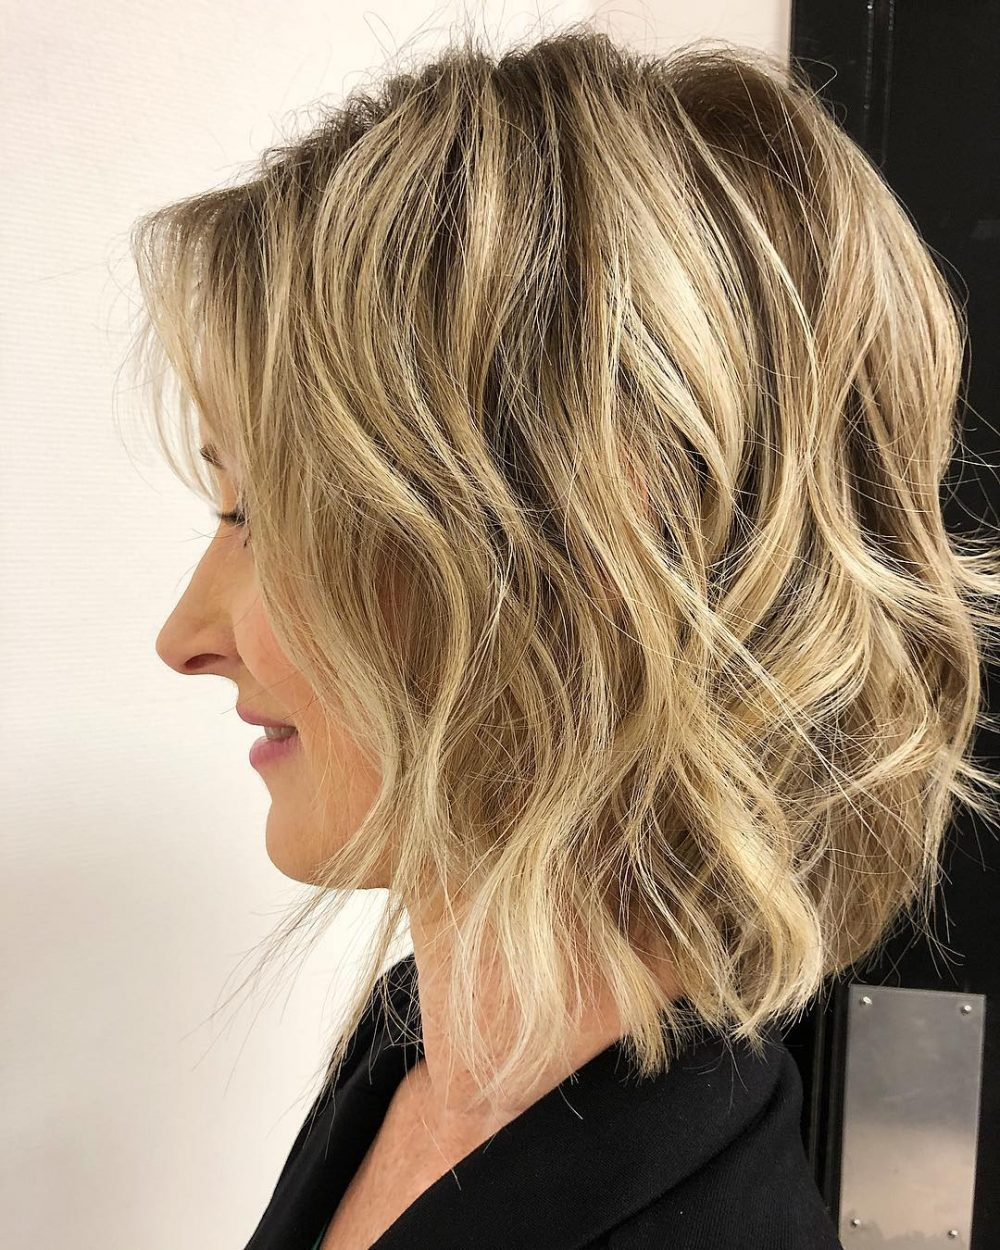 Hair Styles For Very Fine Hair: 43 Perfect Short Hairstyles For Fine Hair In 2018